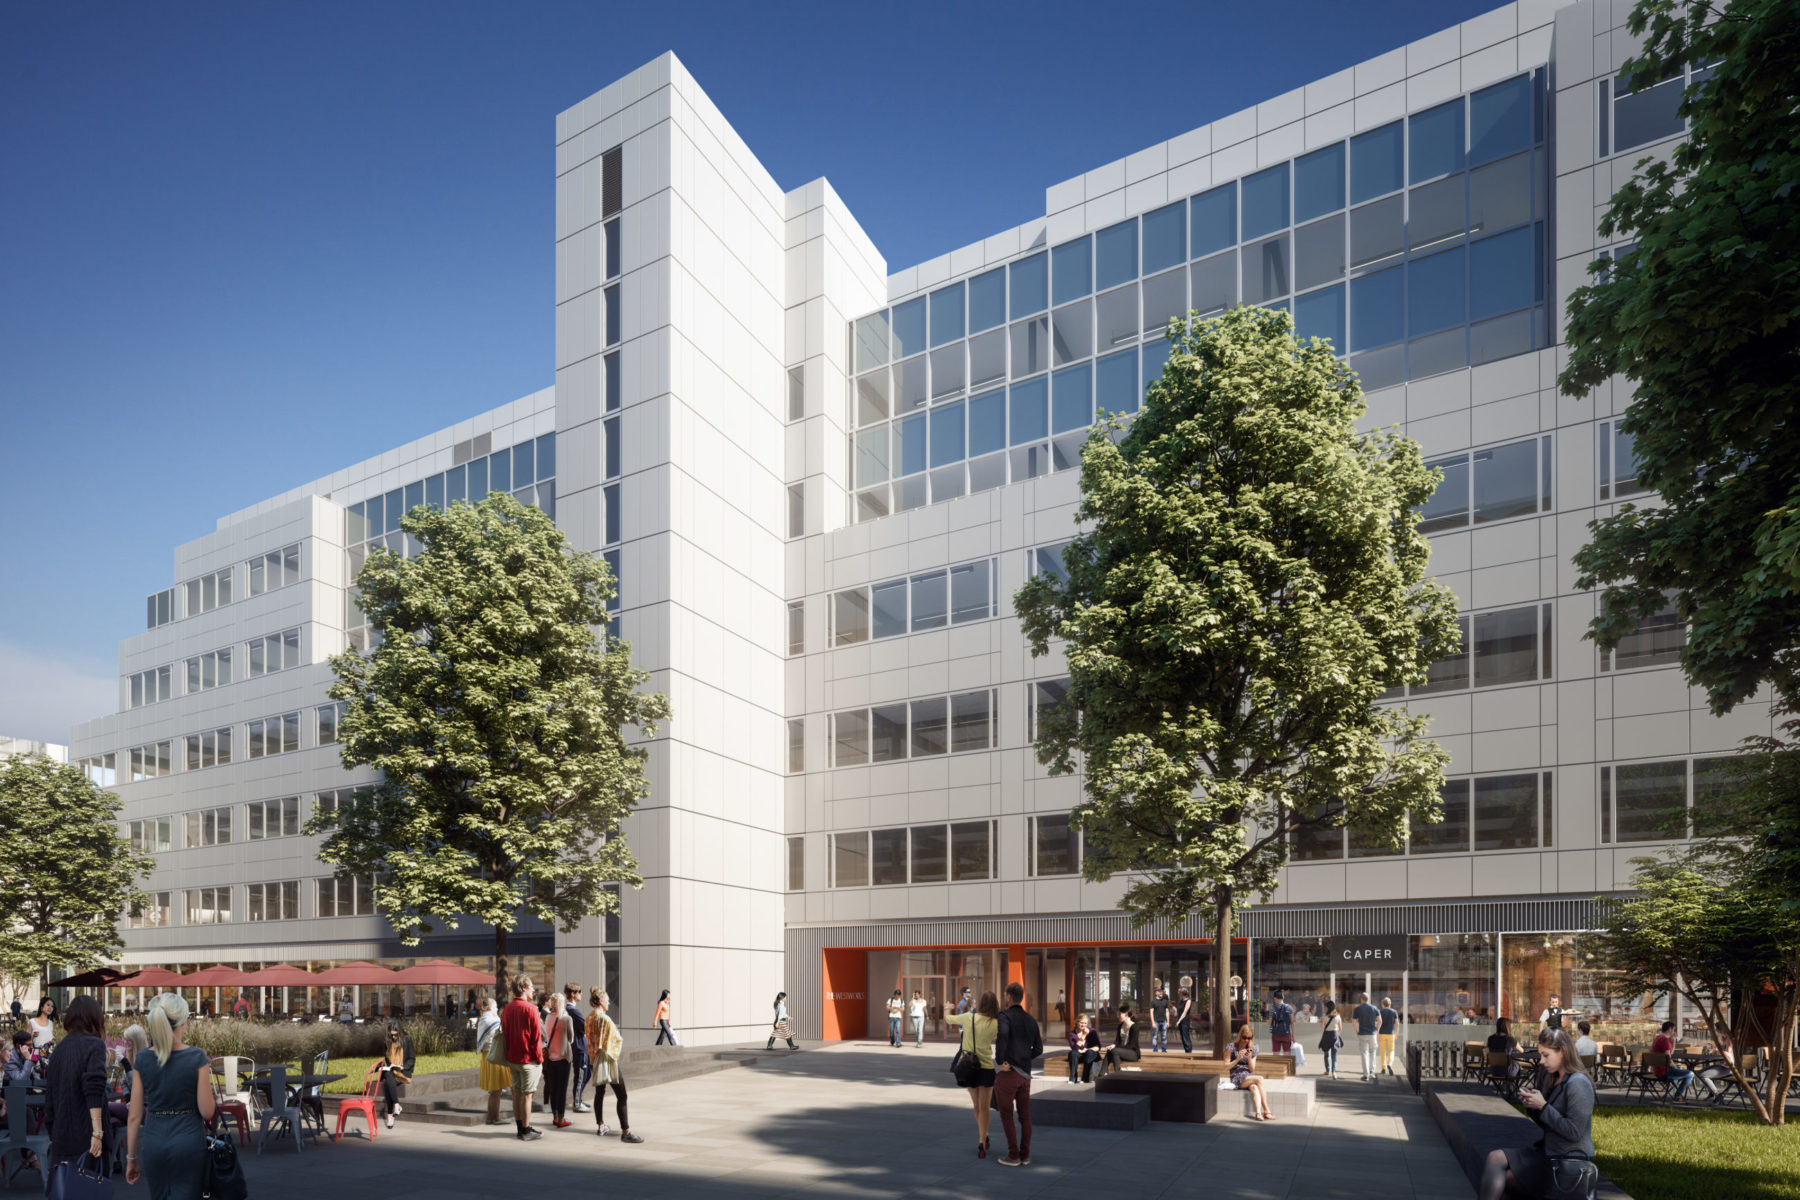 Open House London comes to White City Place